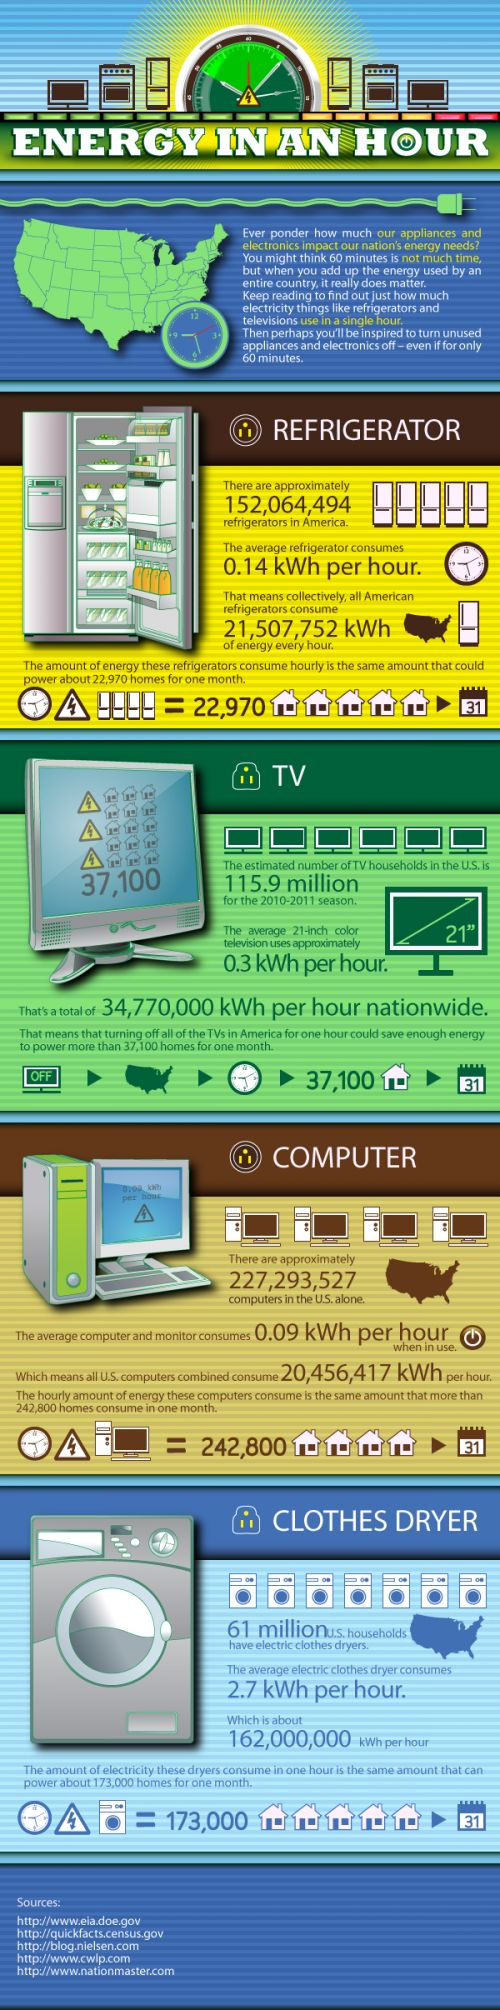 ways to save electricity by being energy efficient